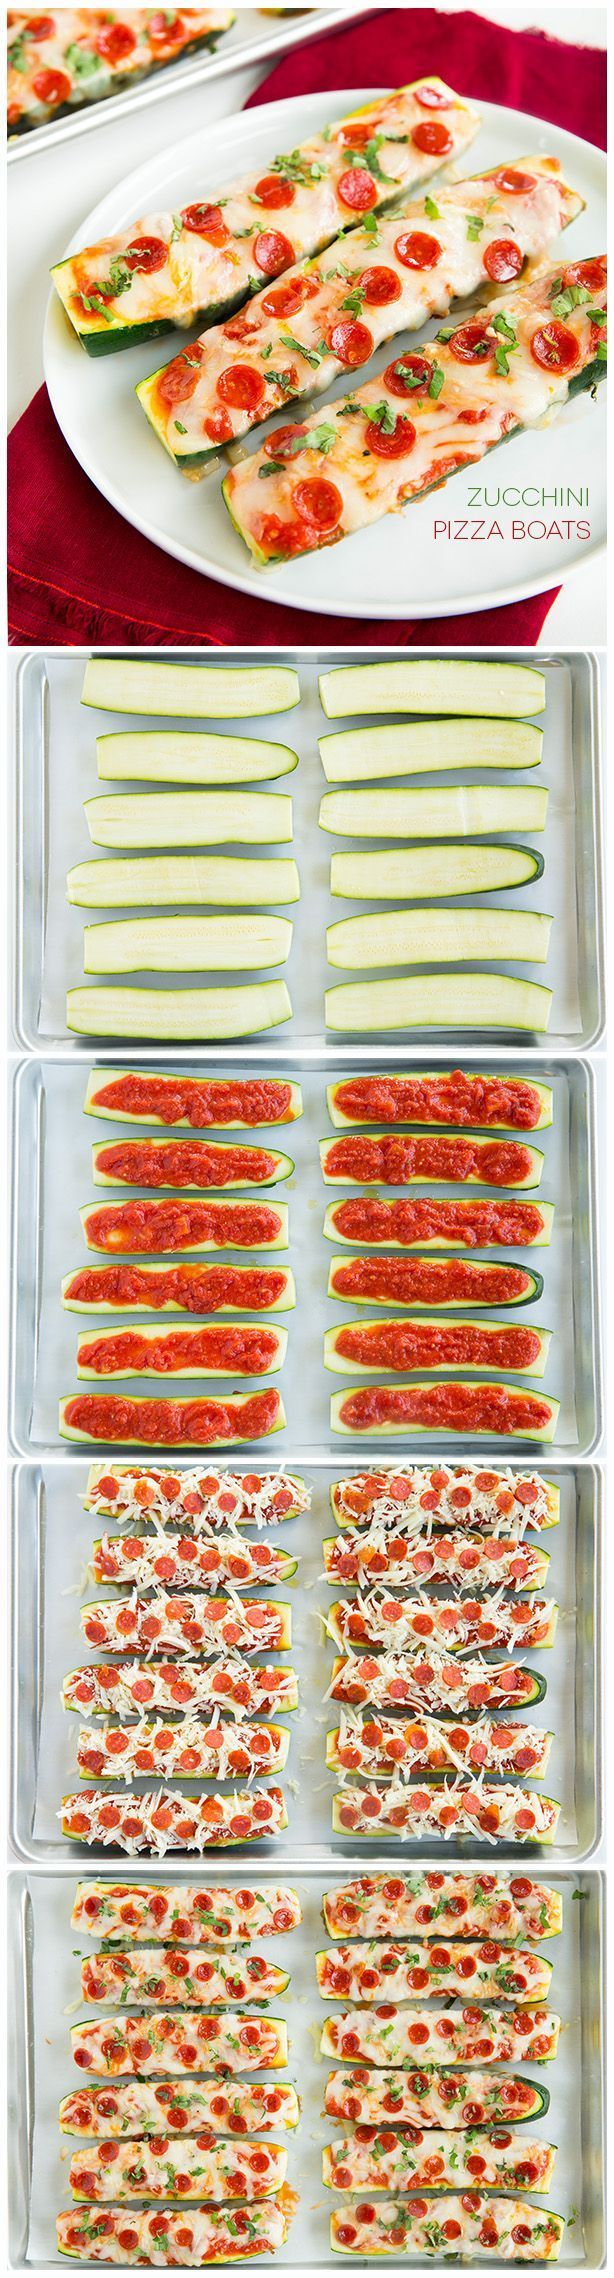 Zucchini Pizza Boats - they are INCREDIBLY good and only take about 10 minutes prep!